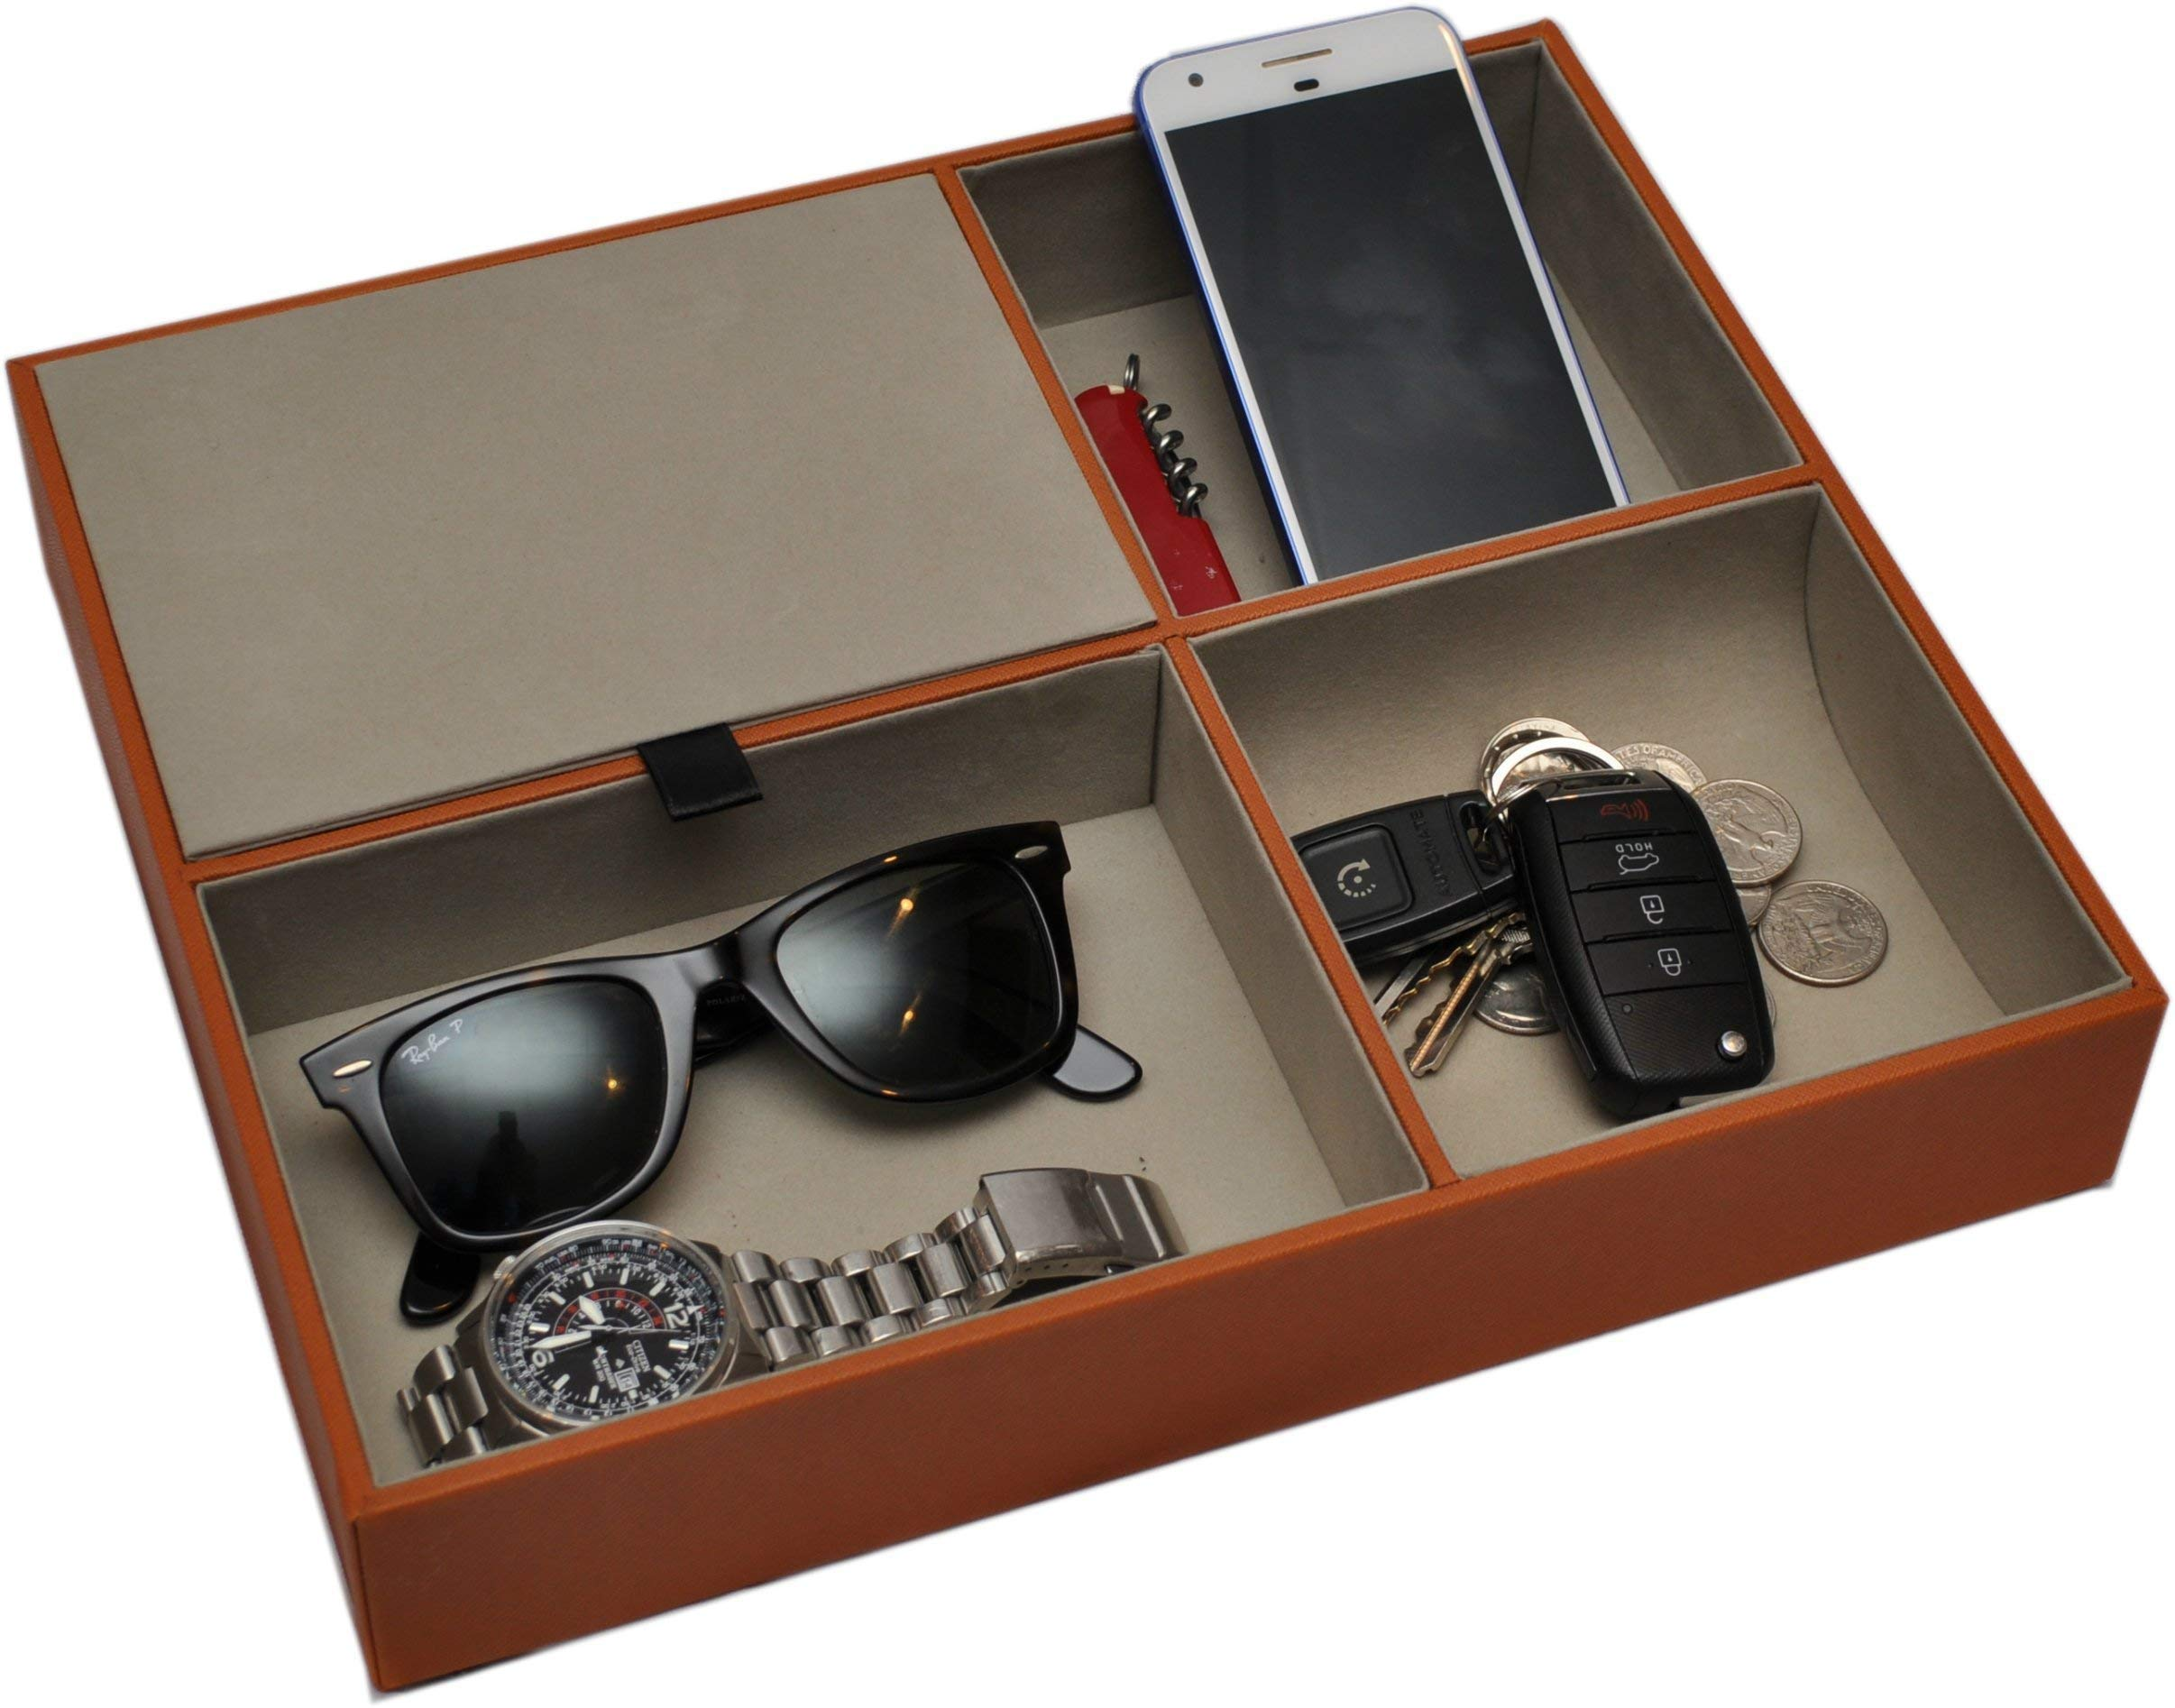 Valet Tray Catchall for Home and Office - Organizer and Storage Station for Nightstand, Desktop, and Kitchen